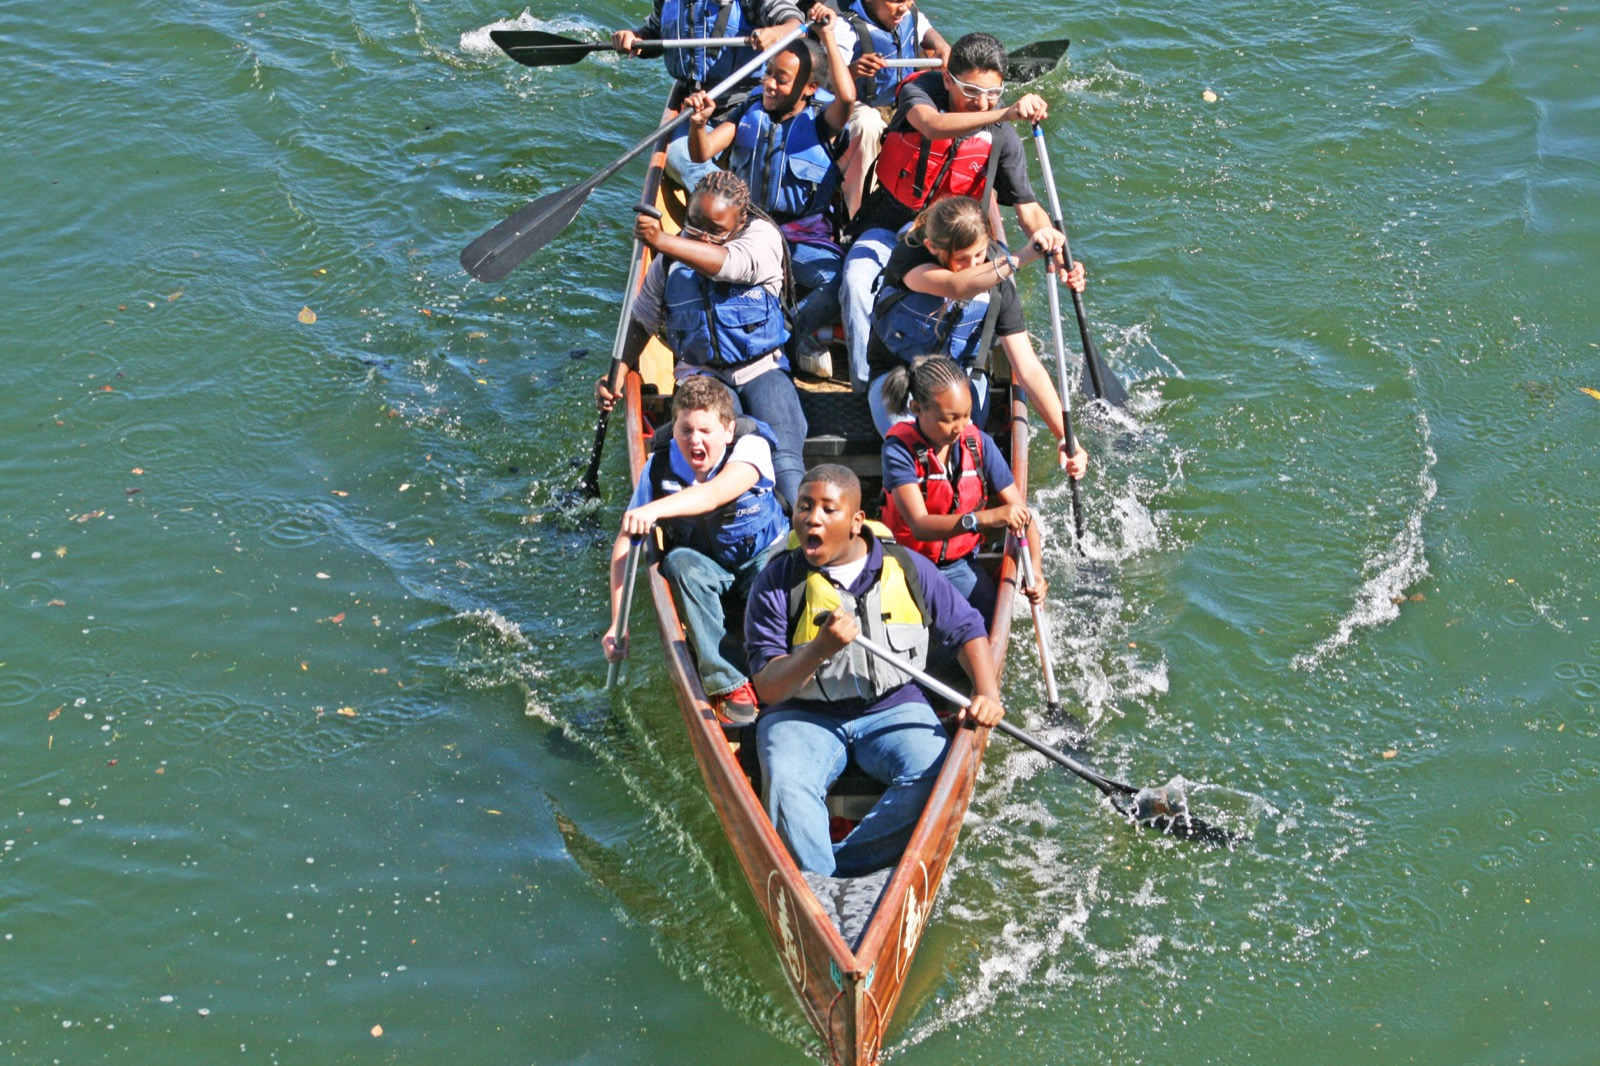 action shot of canoemobile participants paddling the canoe